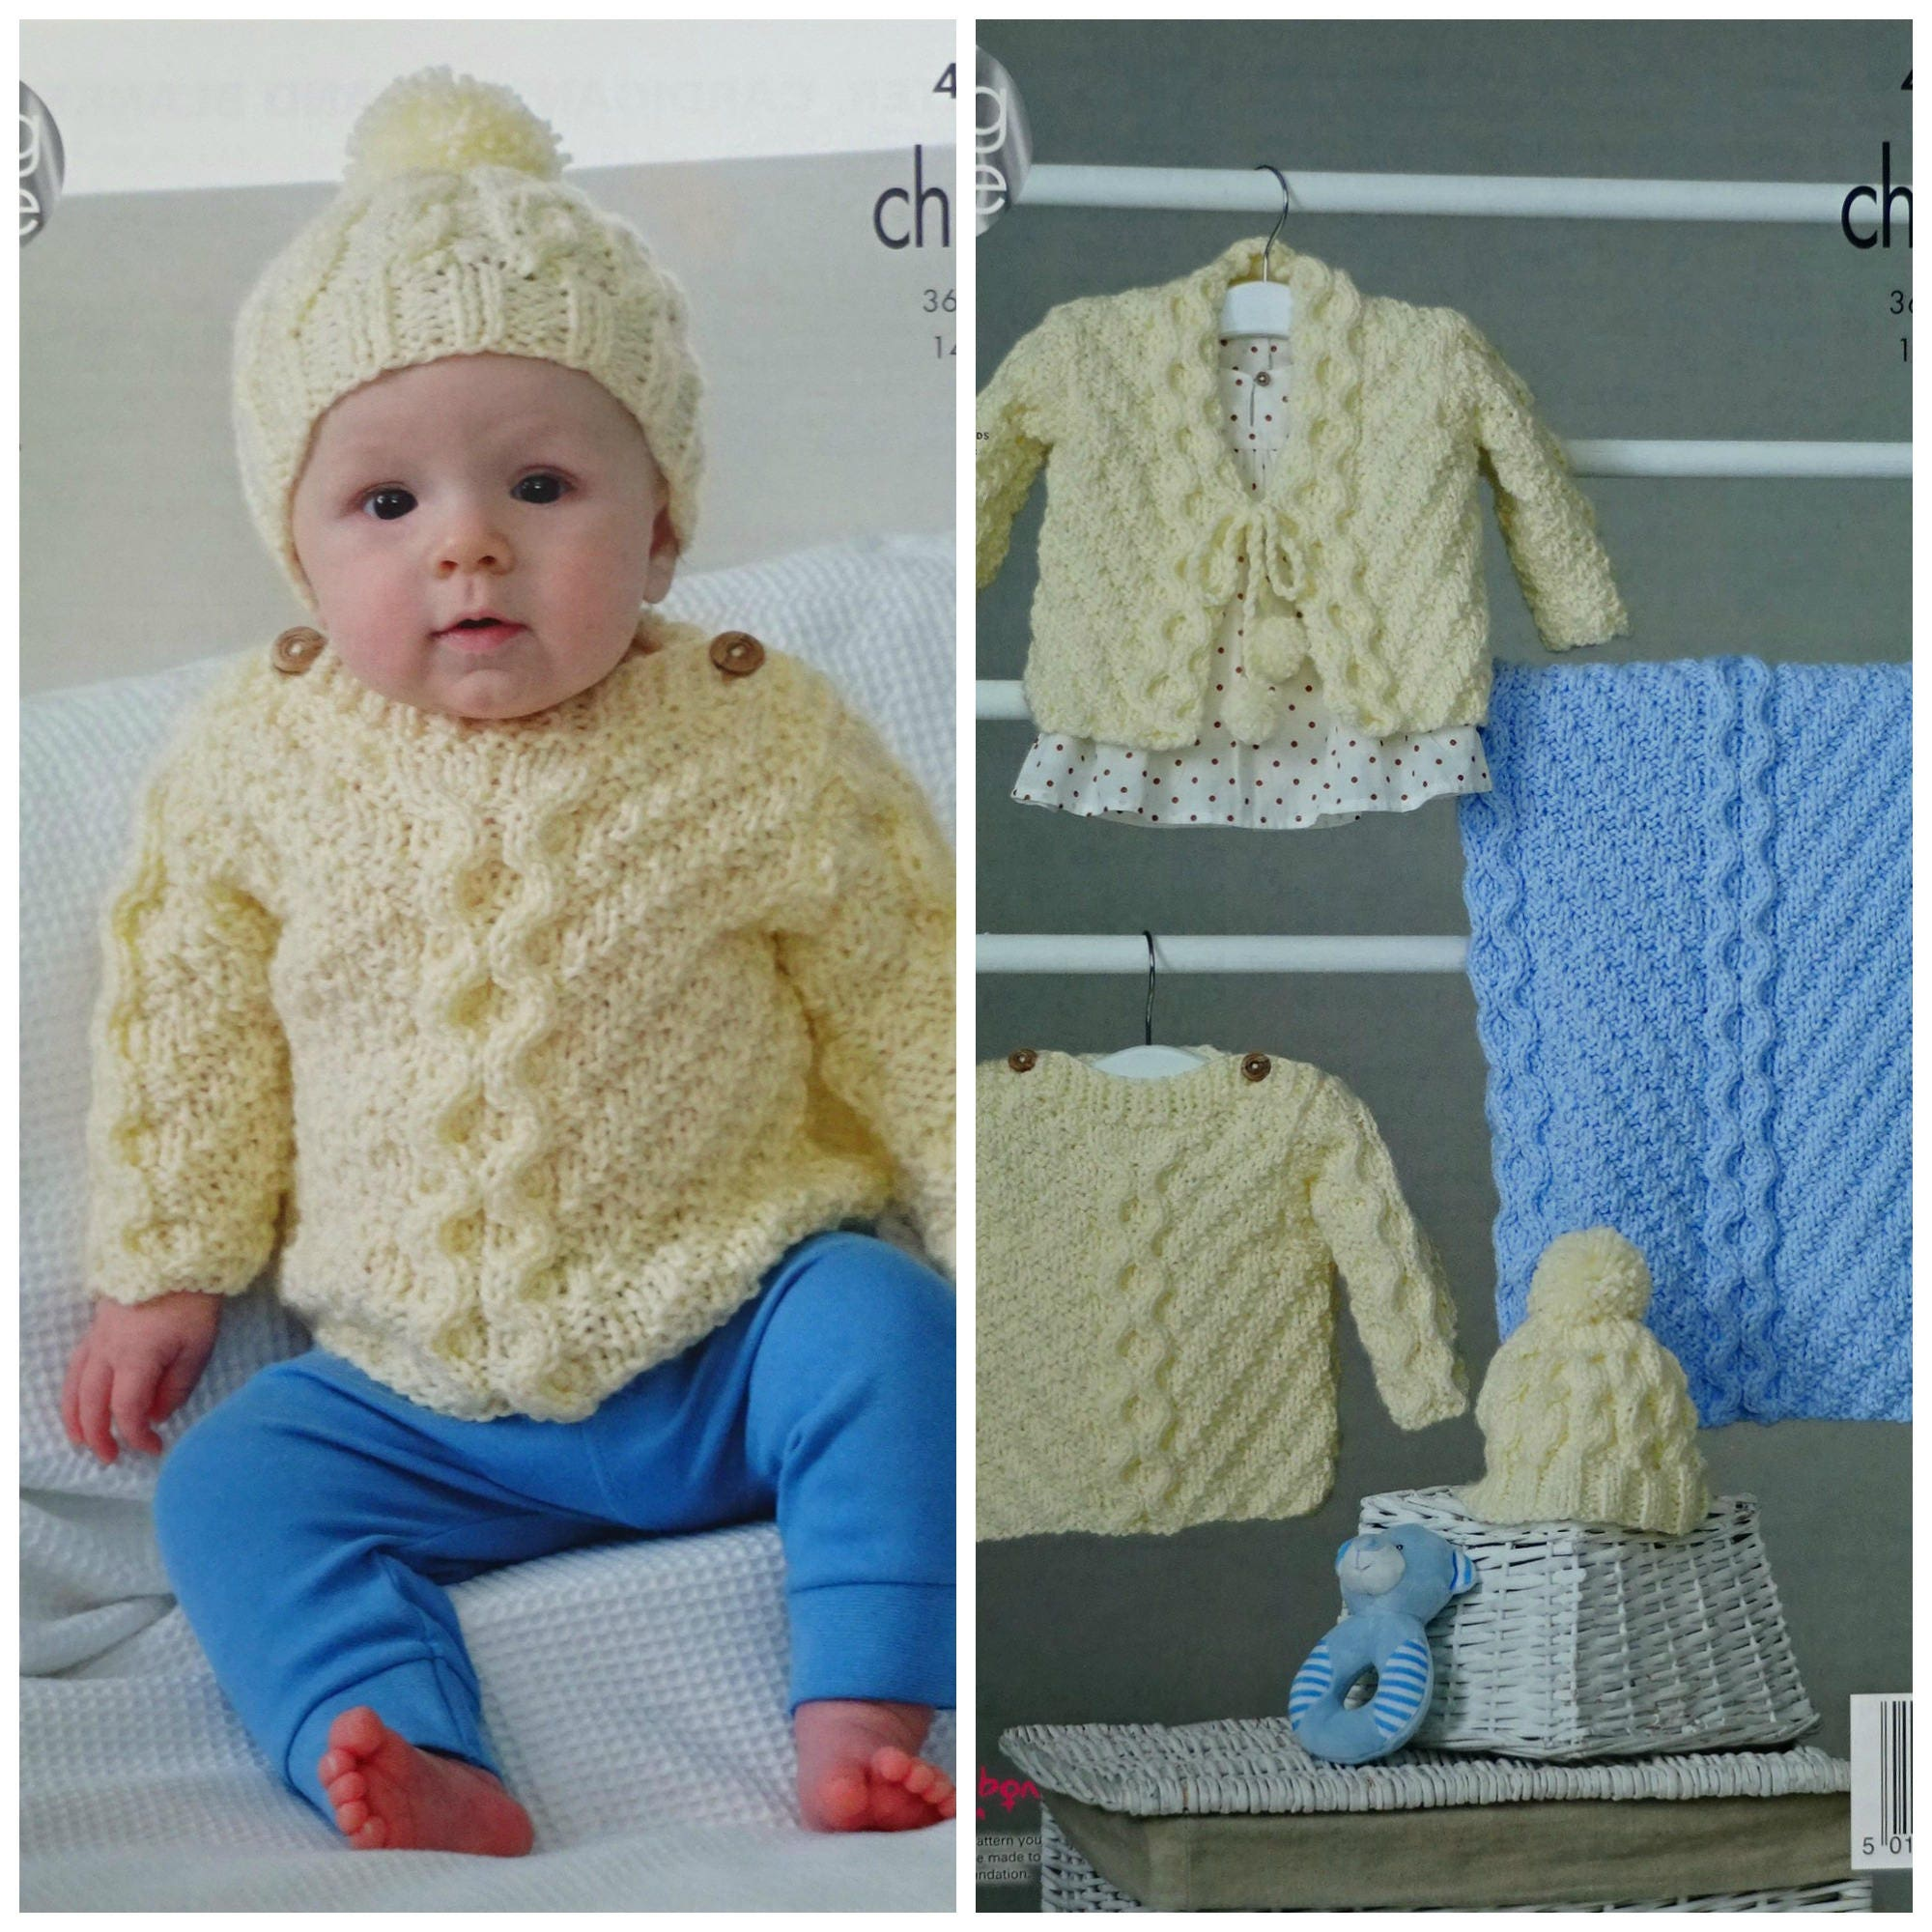 Baby Knitting Pattern K4847 Babies Cable Jumper Blanket Hat And